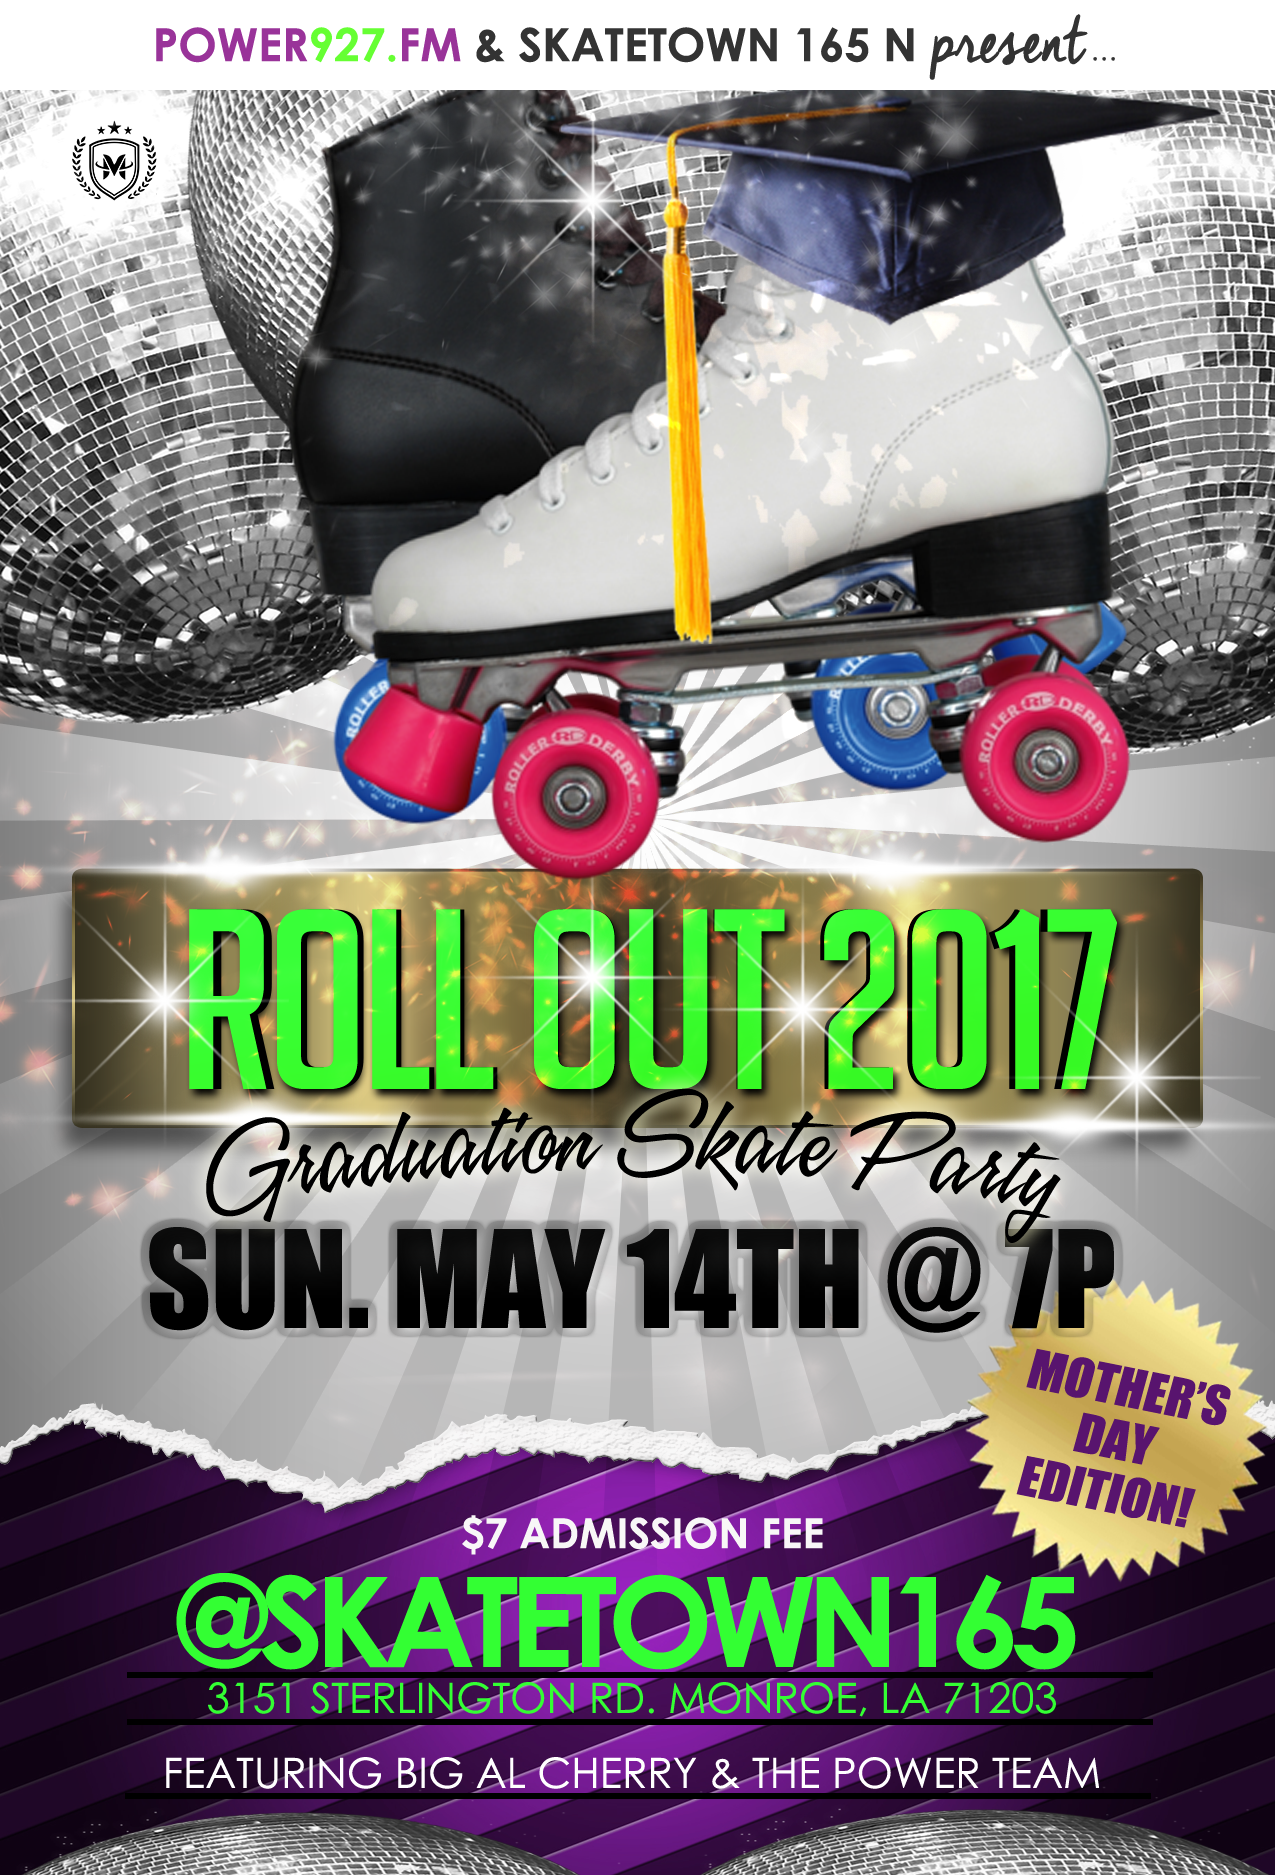 Roll Out 2017: The Most Epic Commencement Celebration